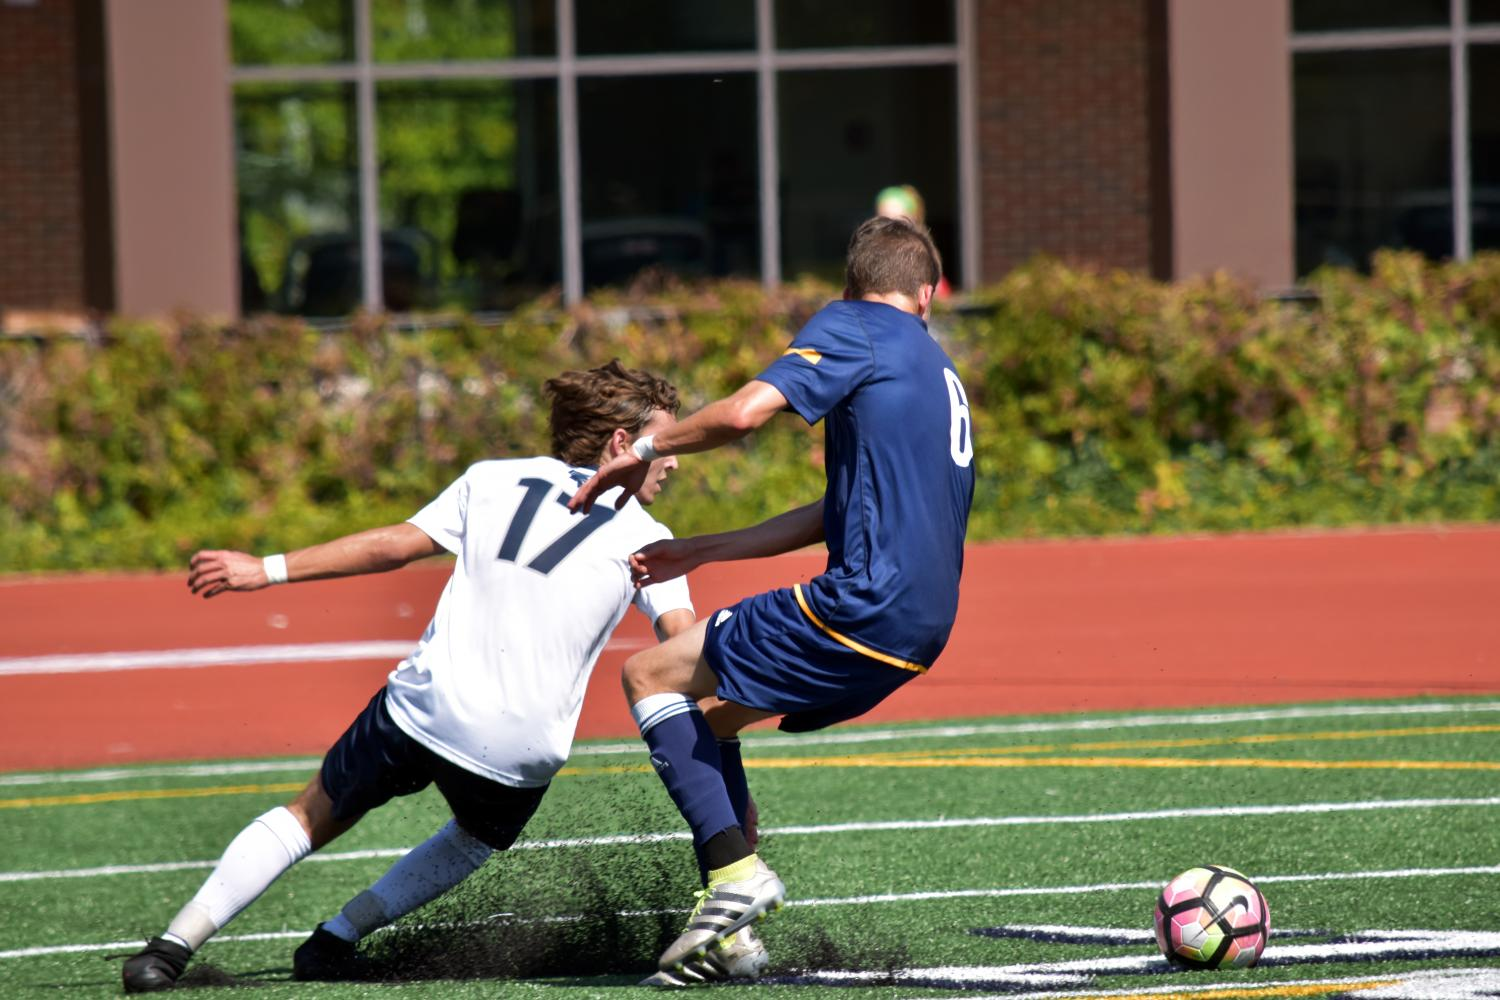 Second-year midfielder Marques Manta chases the ball during a game earlier this season.